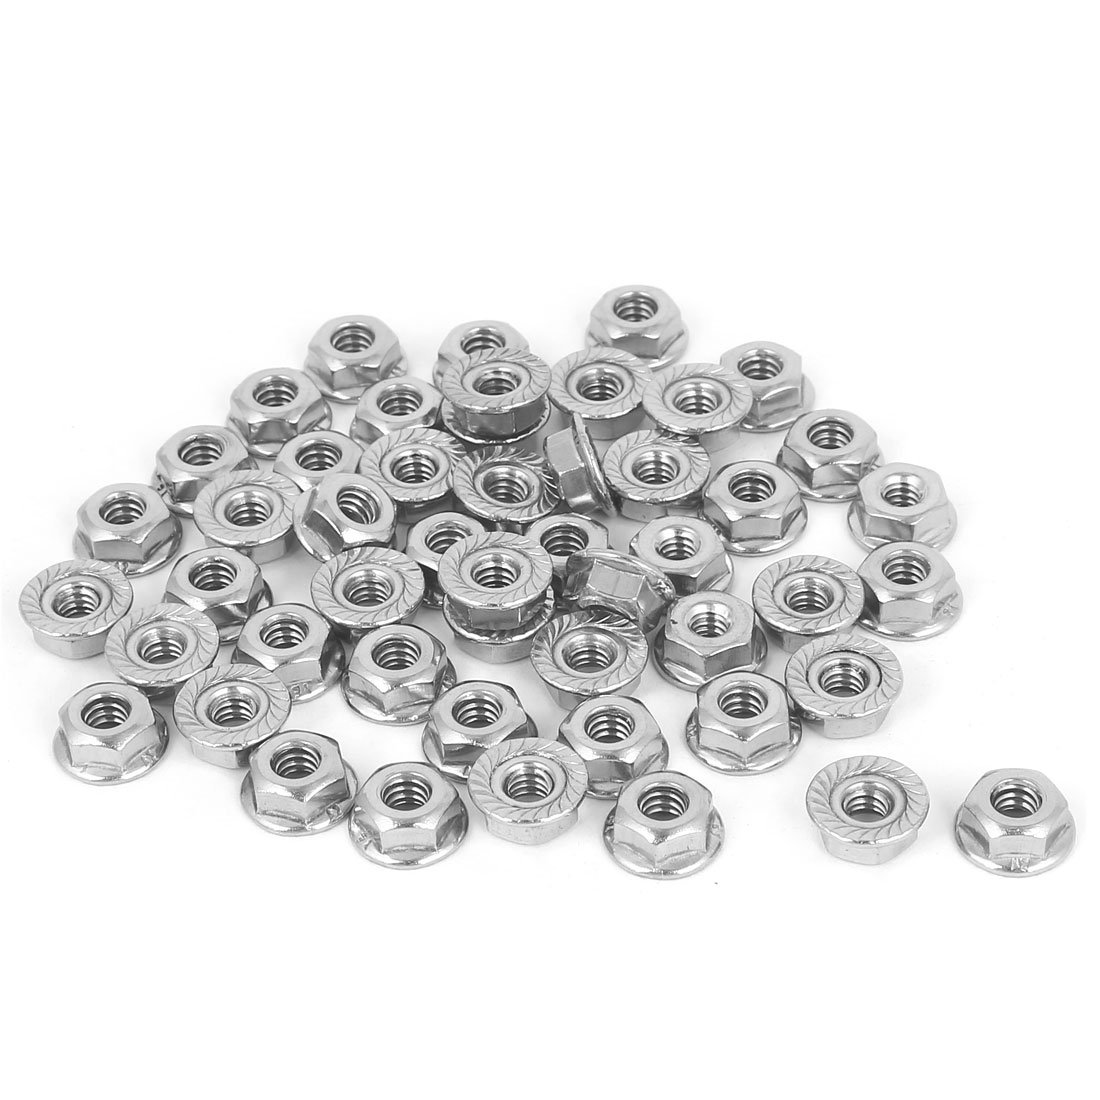 Uxcell a16062700ux0745 Flange Lock Nuts 3/16''-24 304 Stainless Steel Hex Serrated Flange Lock Screw Nuts 50 Pcs